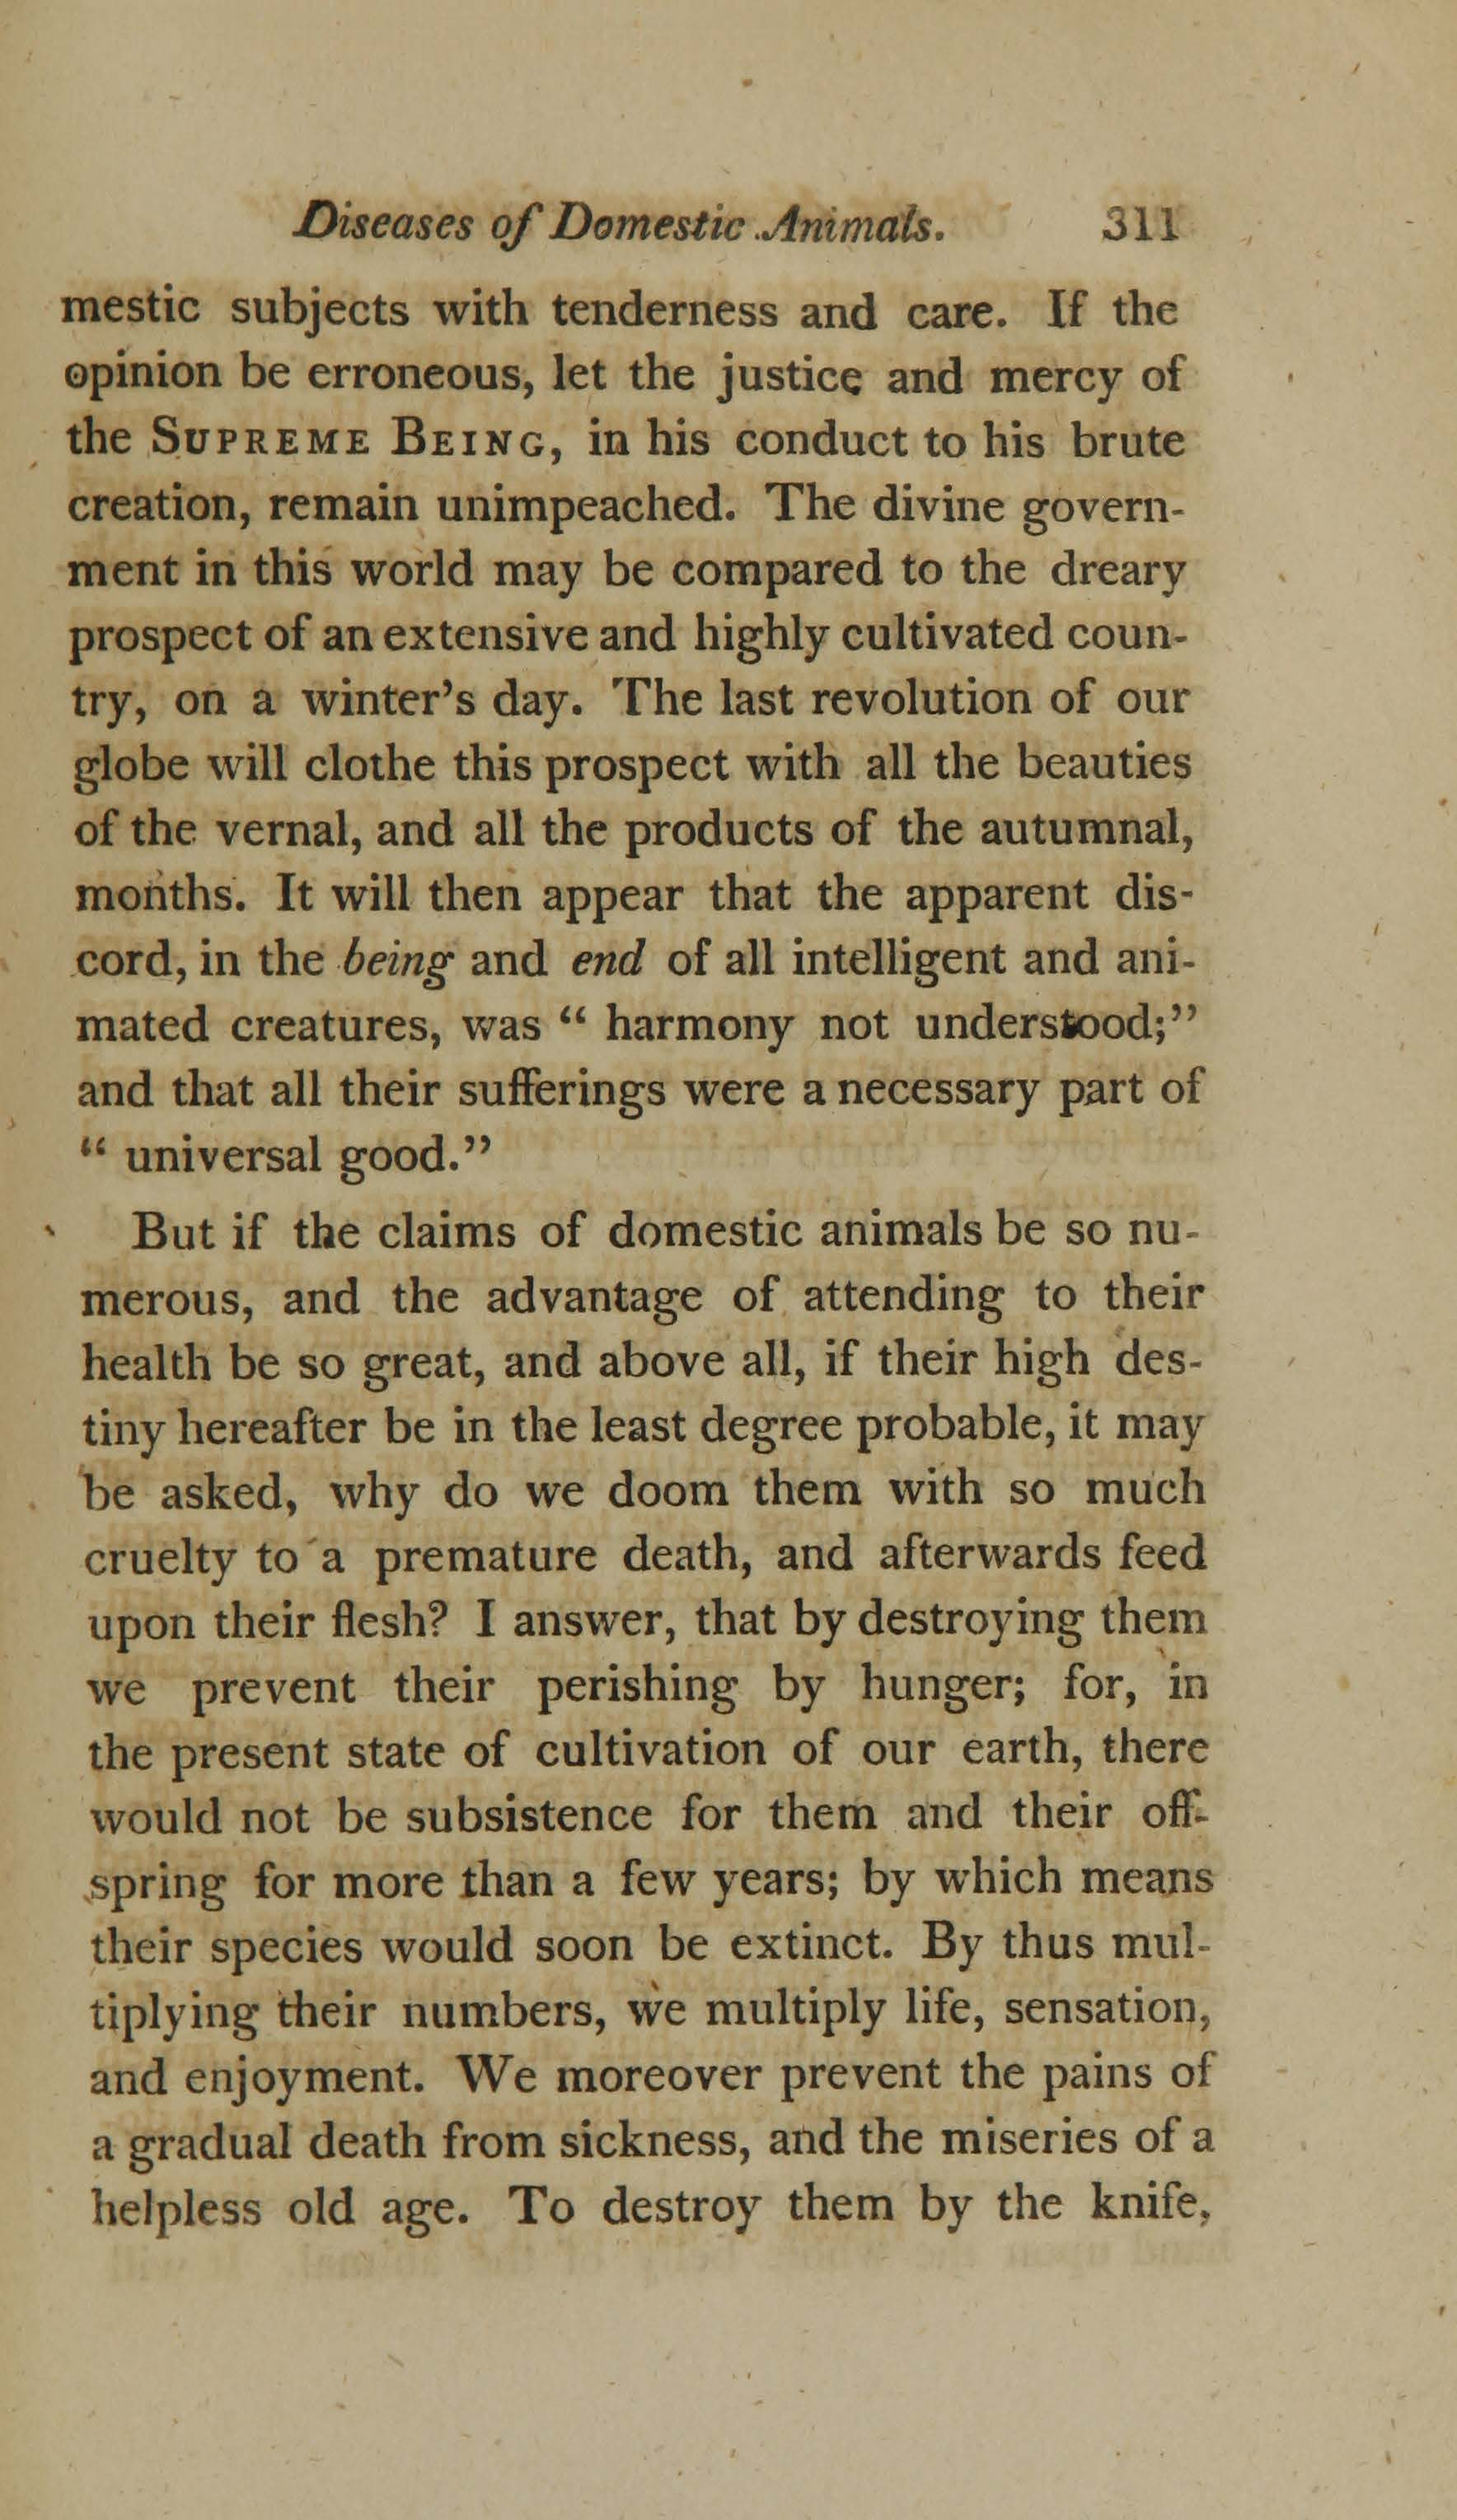 On the Duty and Advantages of Studying the Diseases of Domestic Animals (page 17)